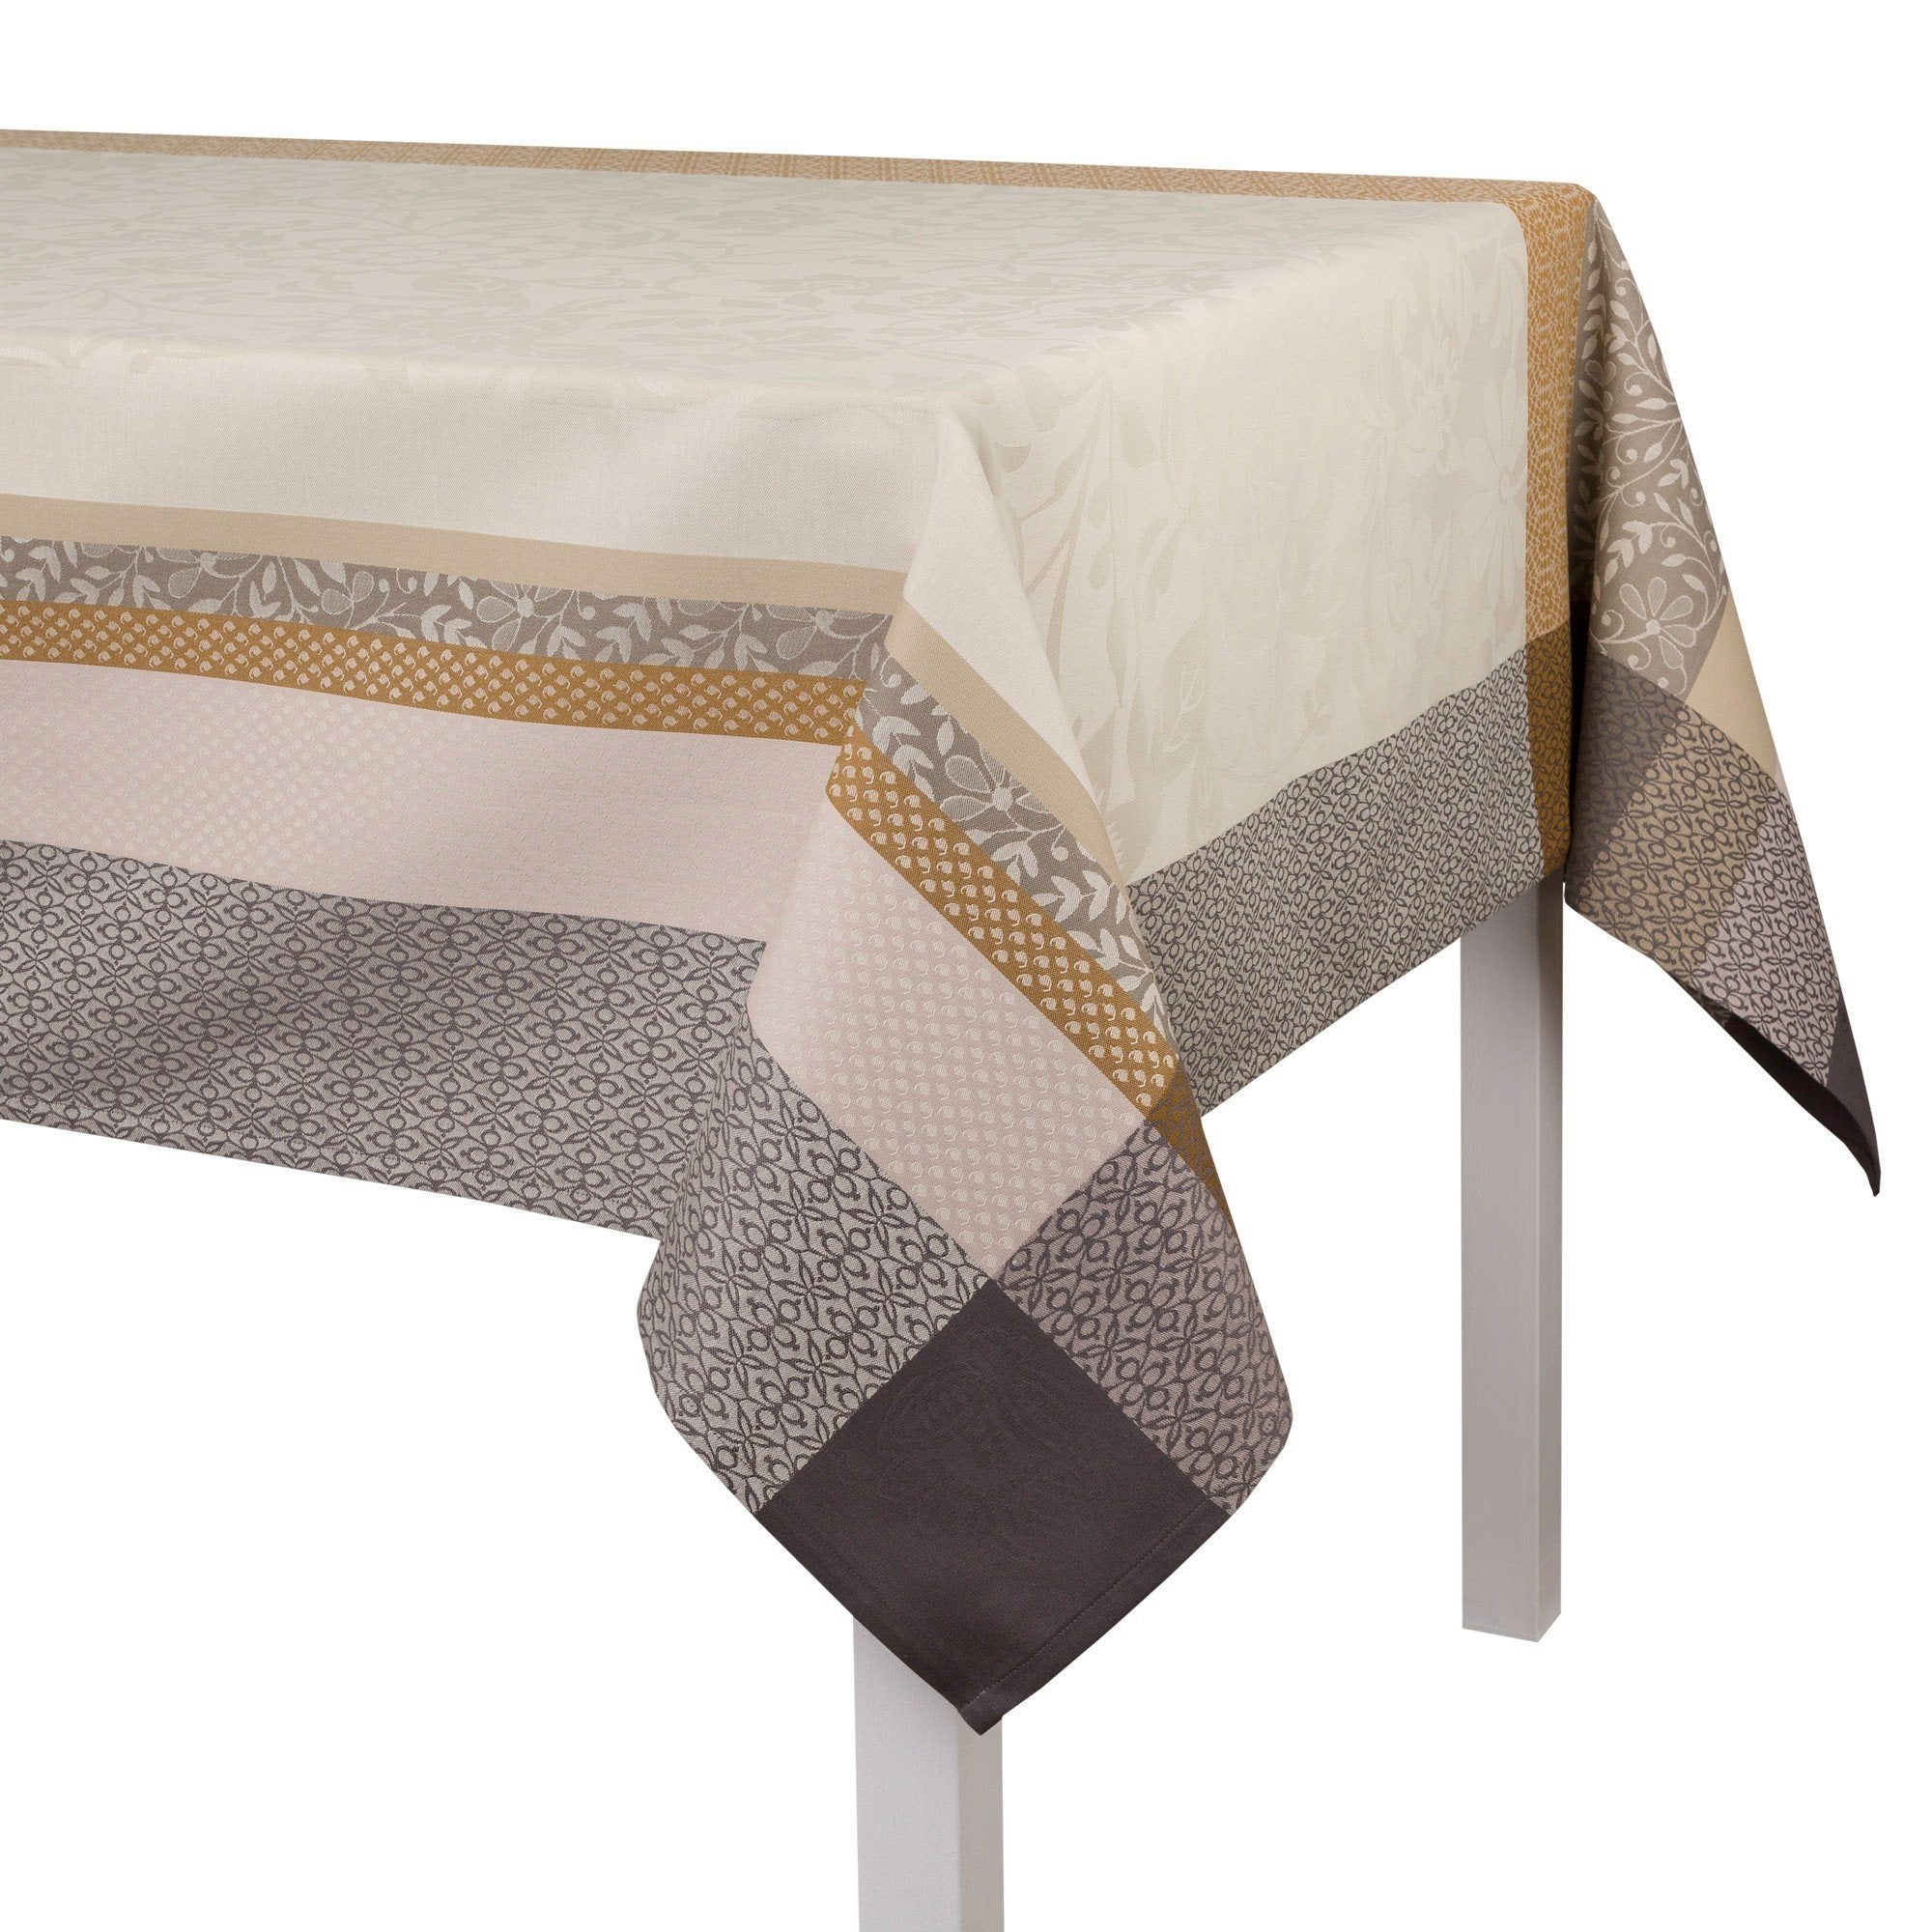 Le Jacquard Français Table Linen Provence Beige Fig Linens Tablecloth